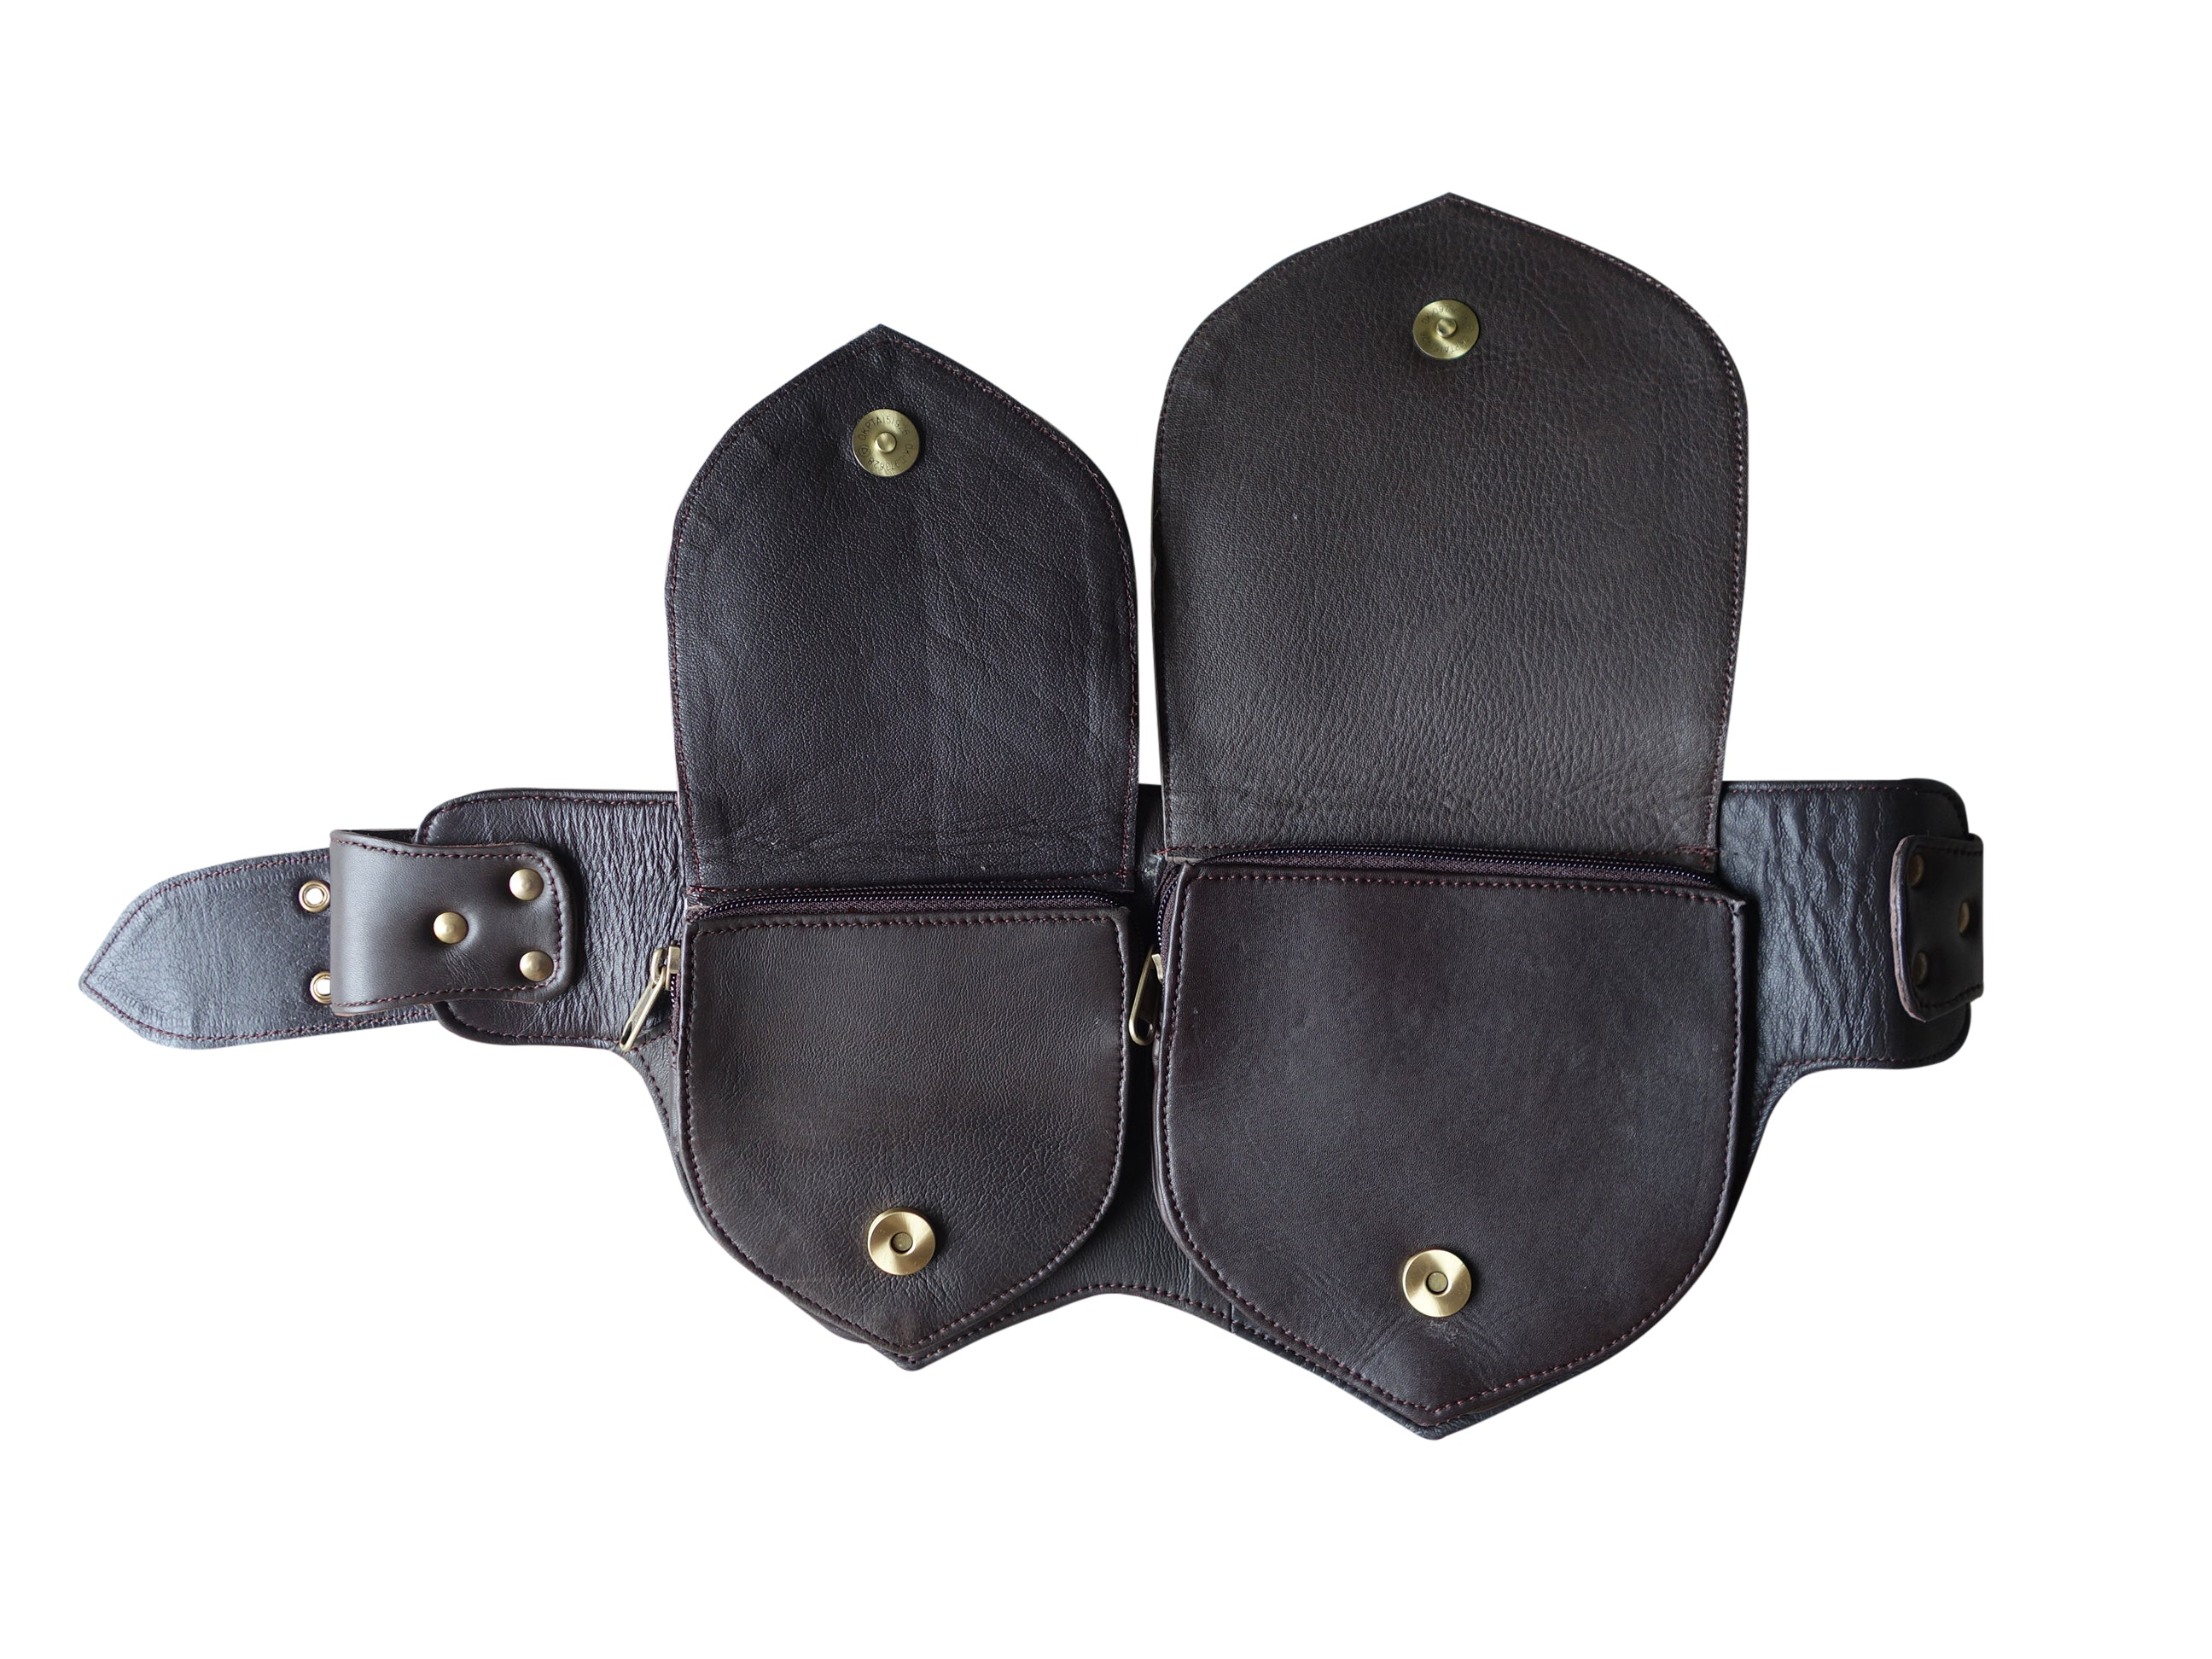 Leather Utility Belt | Black Double Leaf, 3 Pocket | travel, cosplay, festival | Fits iPhone